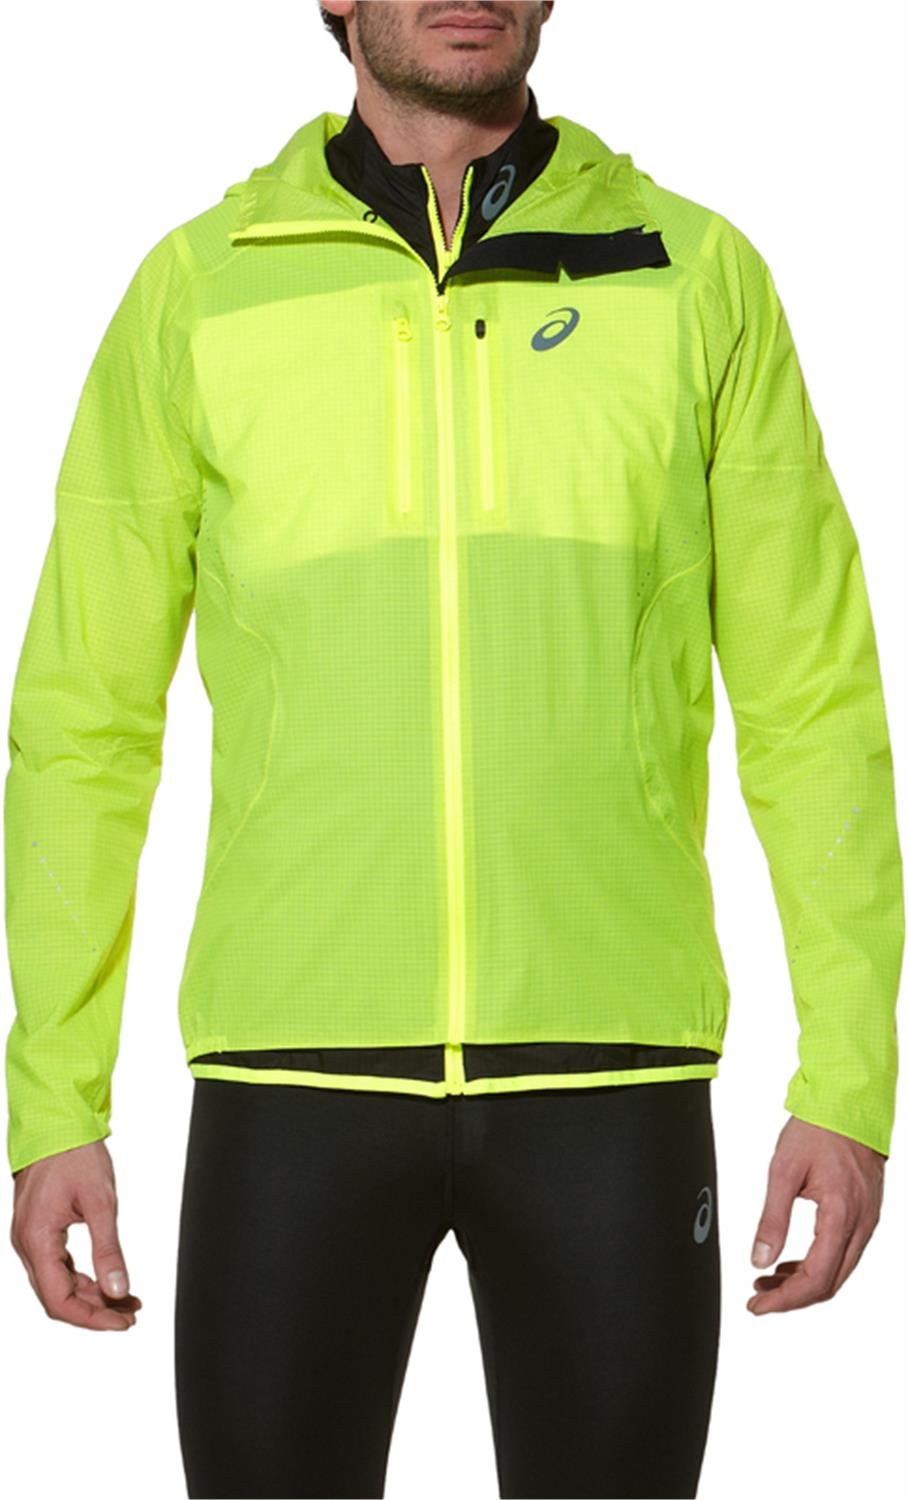 Asics Men's Elite Jacket Asics Men' s Elite Jacket